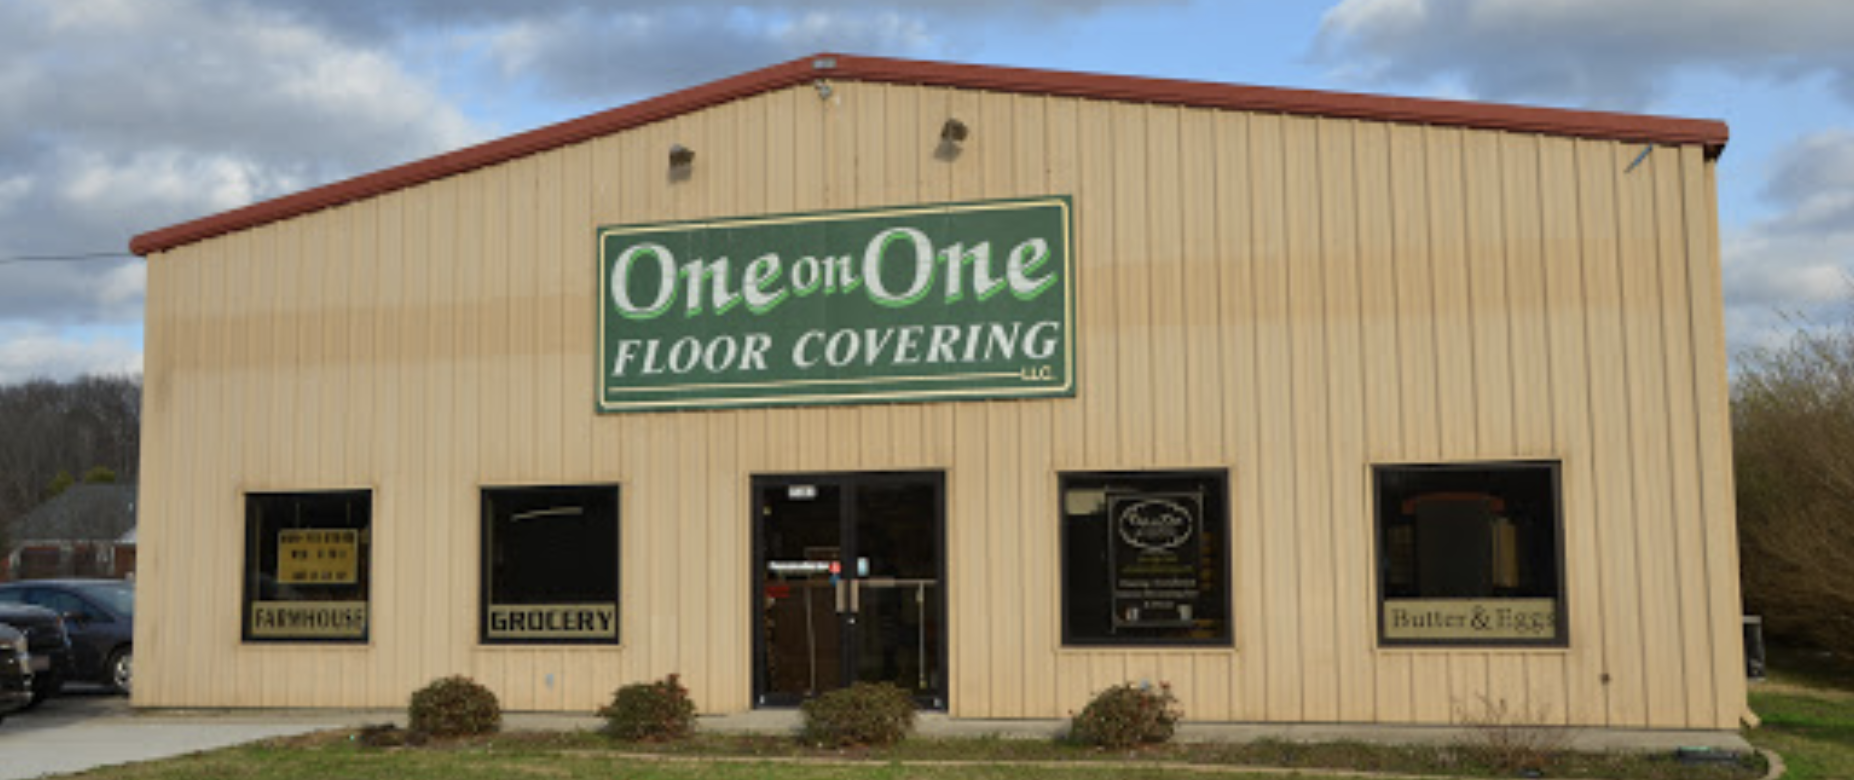 One On One Floor Covering Llc - 14595 US-231, Hazel Green, AL 35750